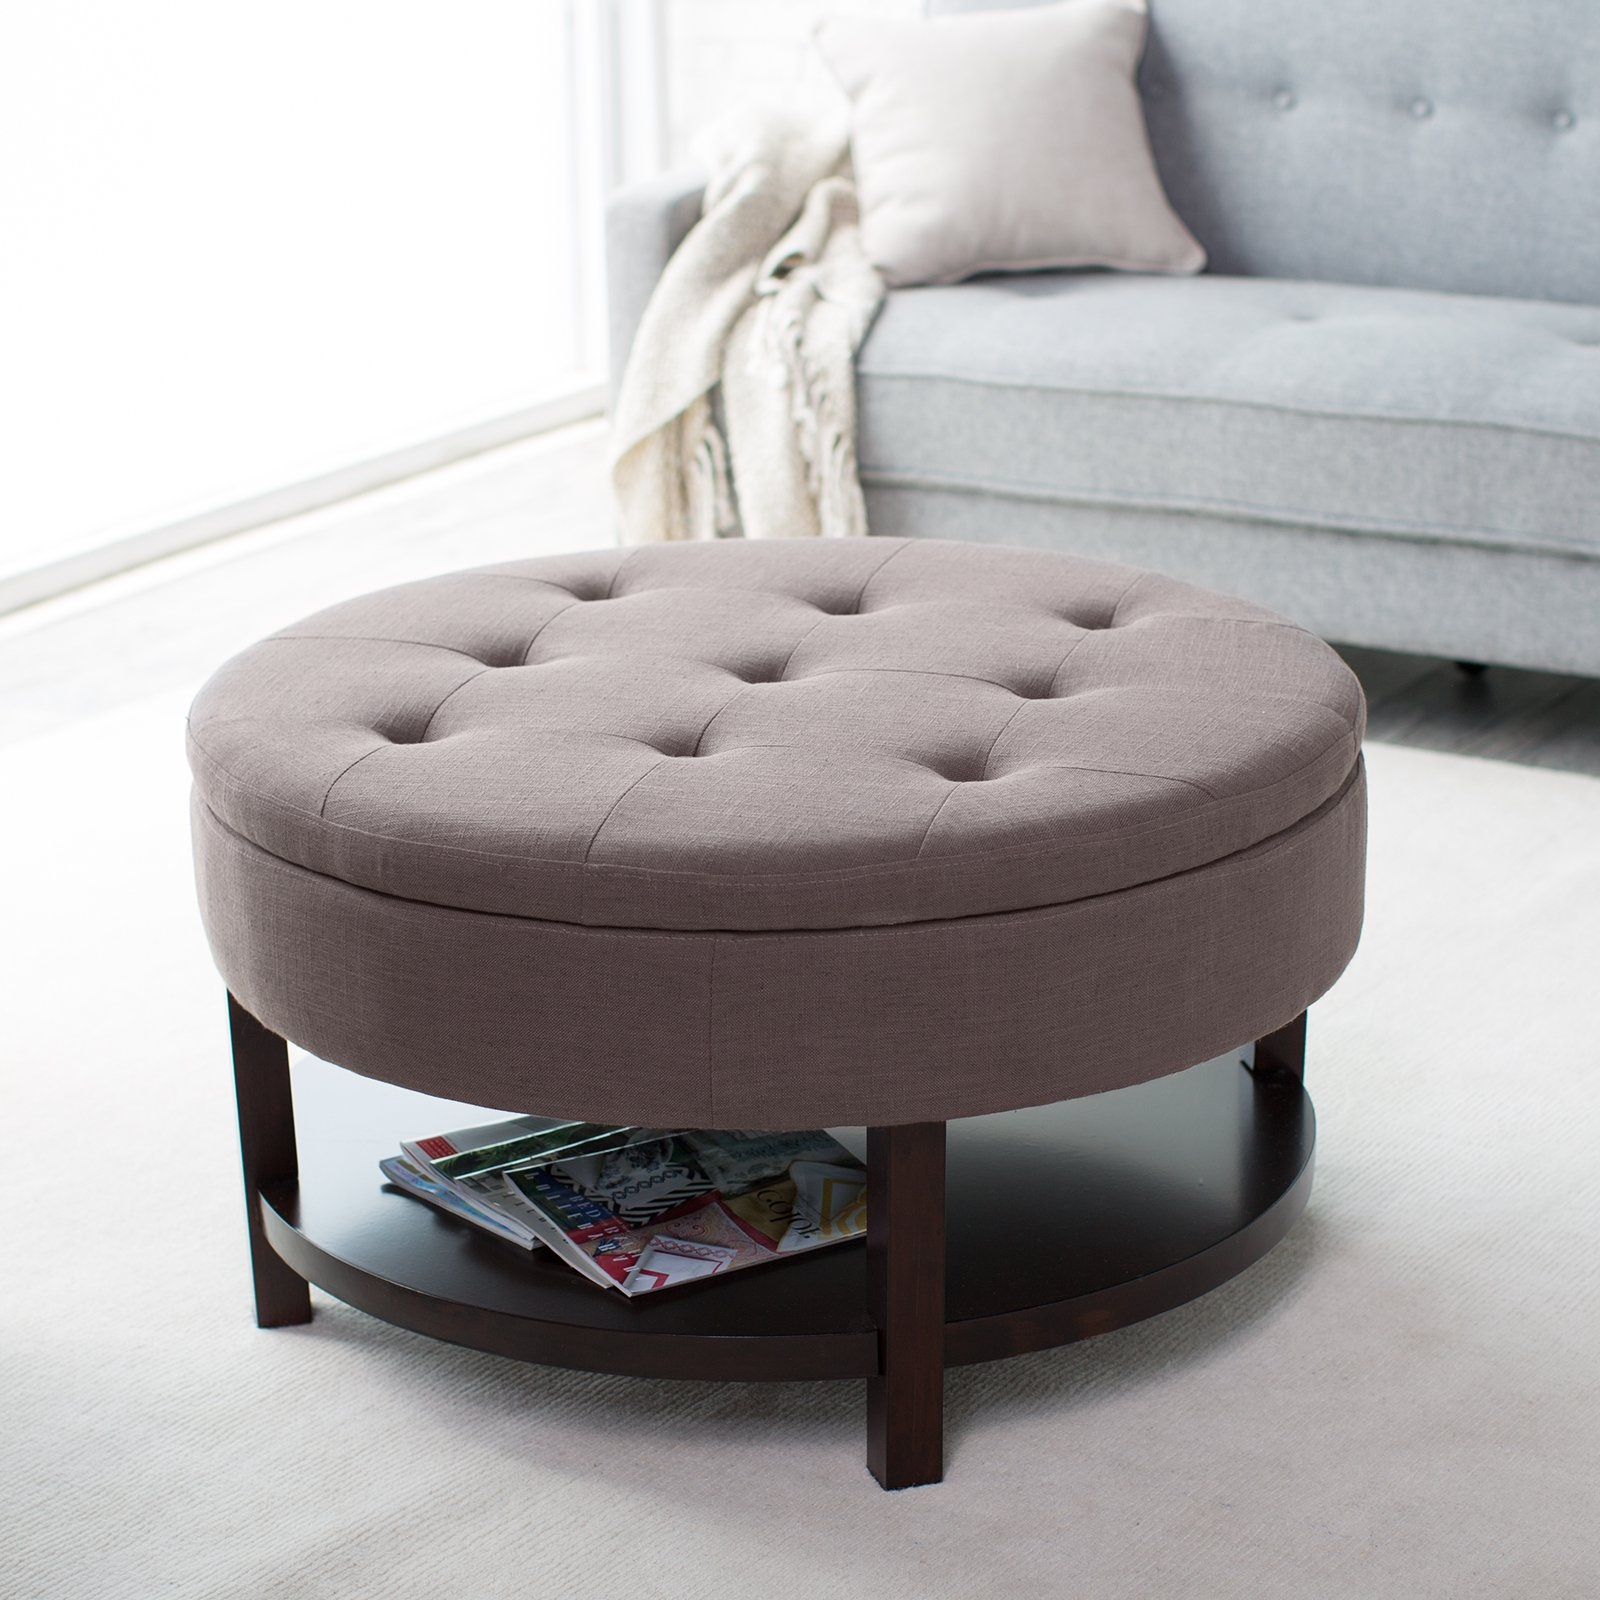 Colorful Ottoman Coffee Table Furniture Extra Large Ottoman For Large Space Living Room Design